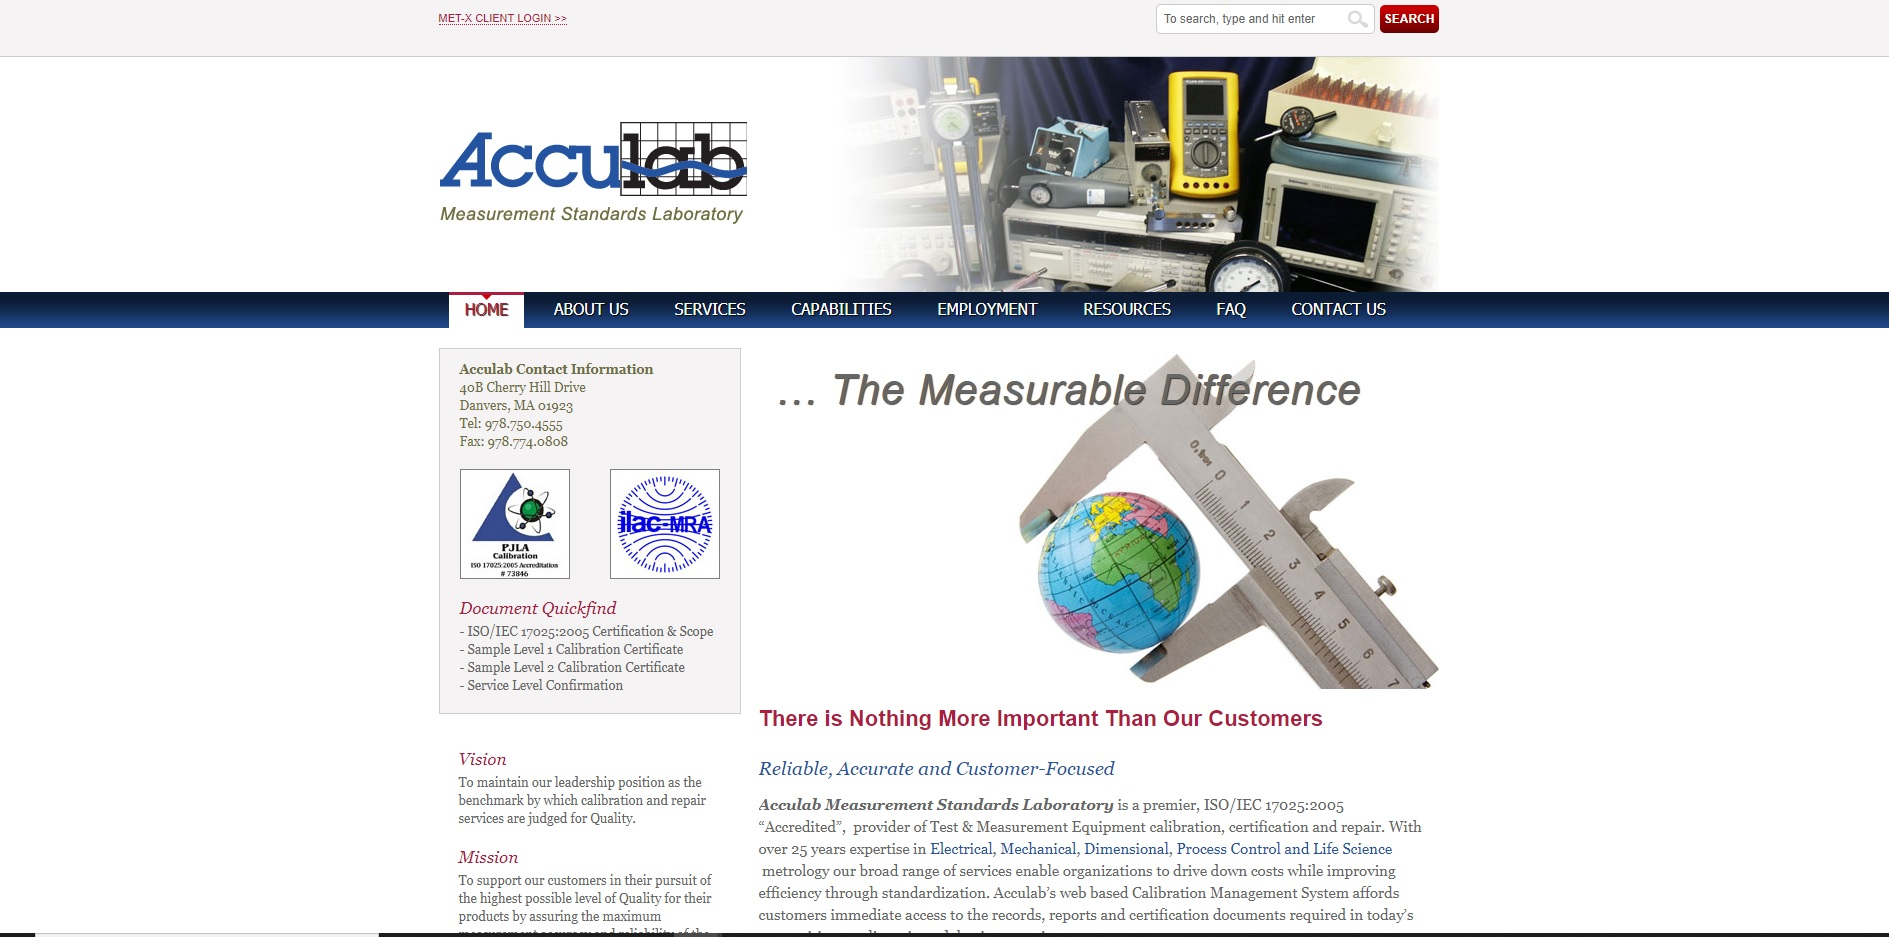 ACCULAB Measurement Standards, Inc.